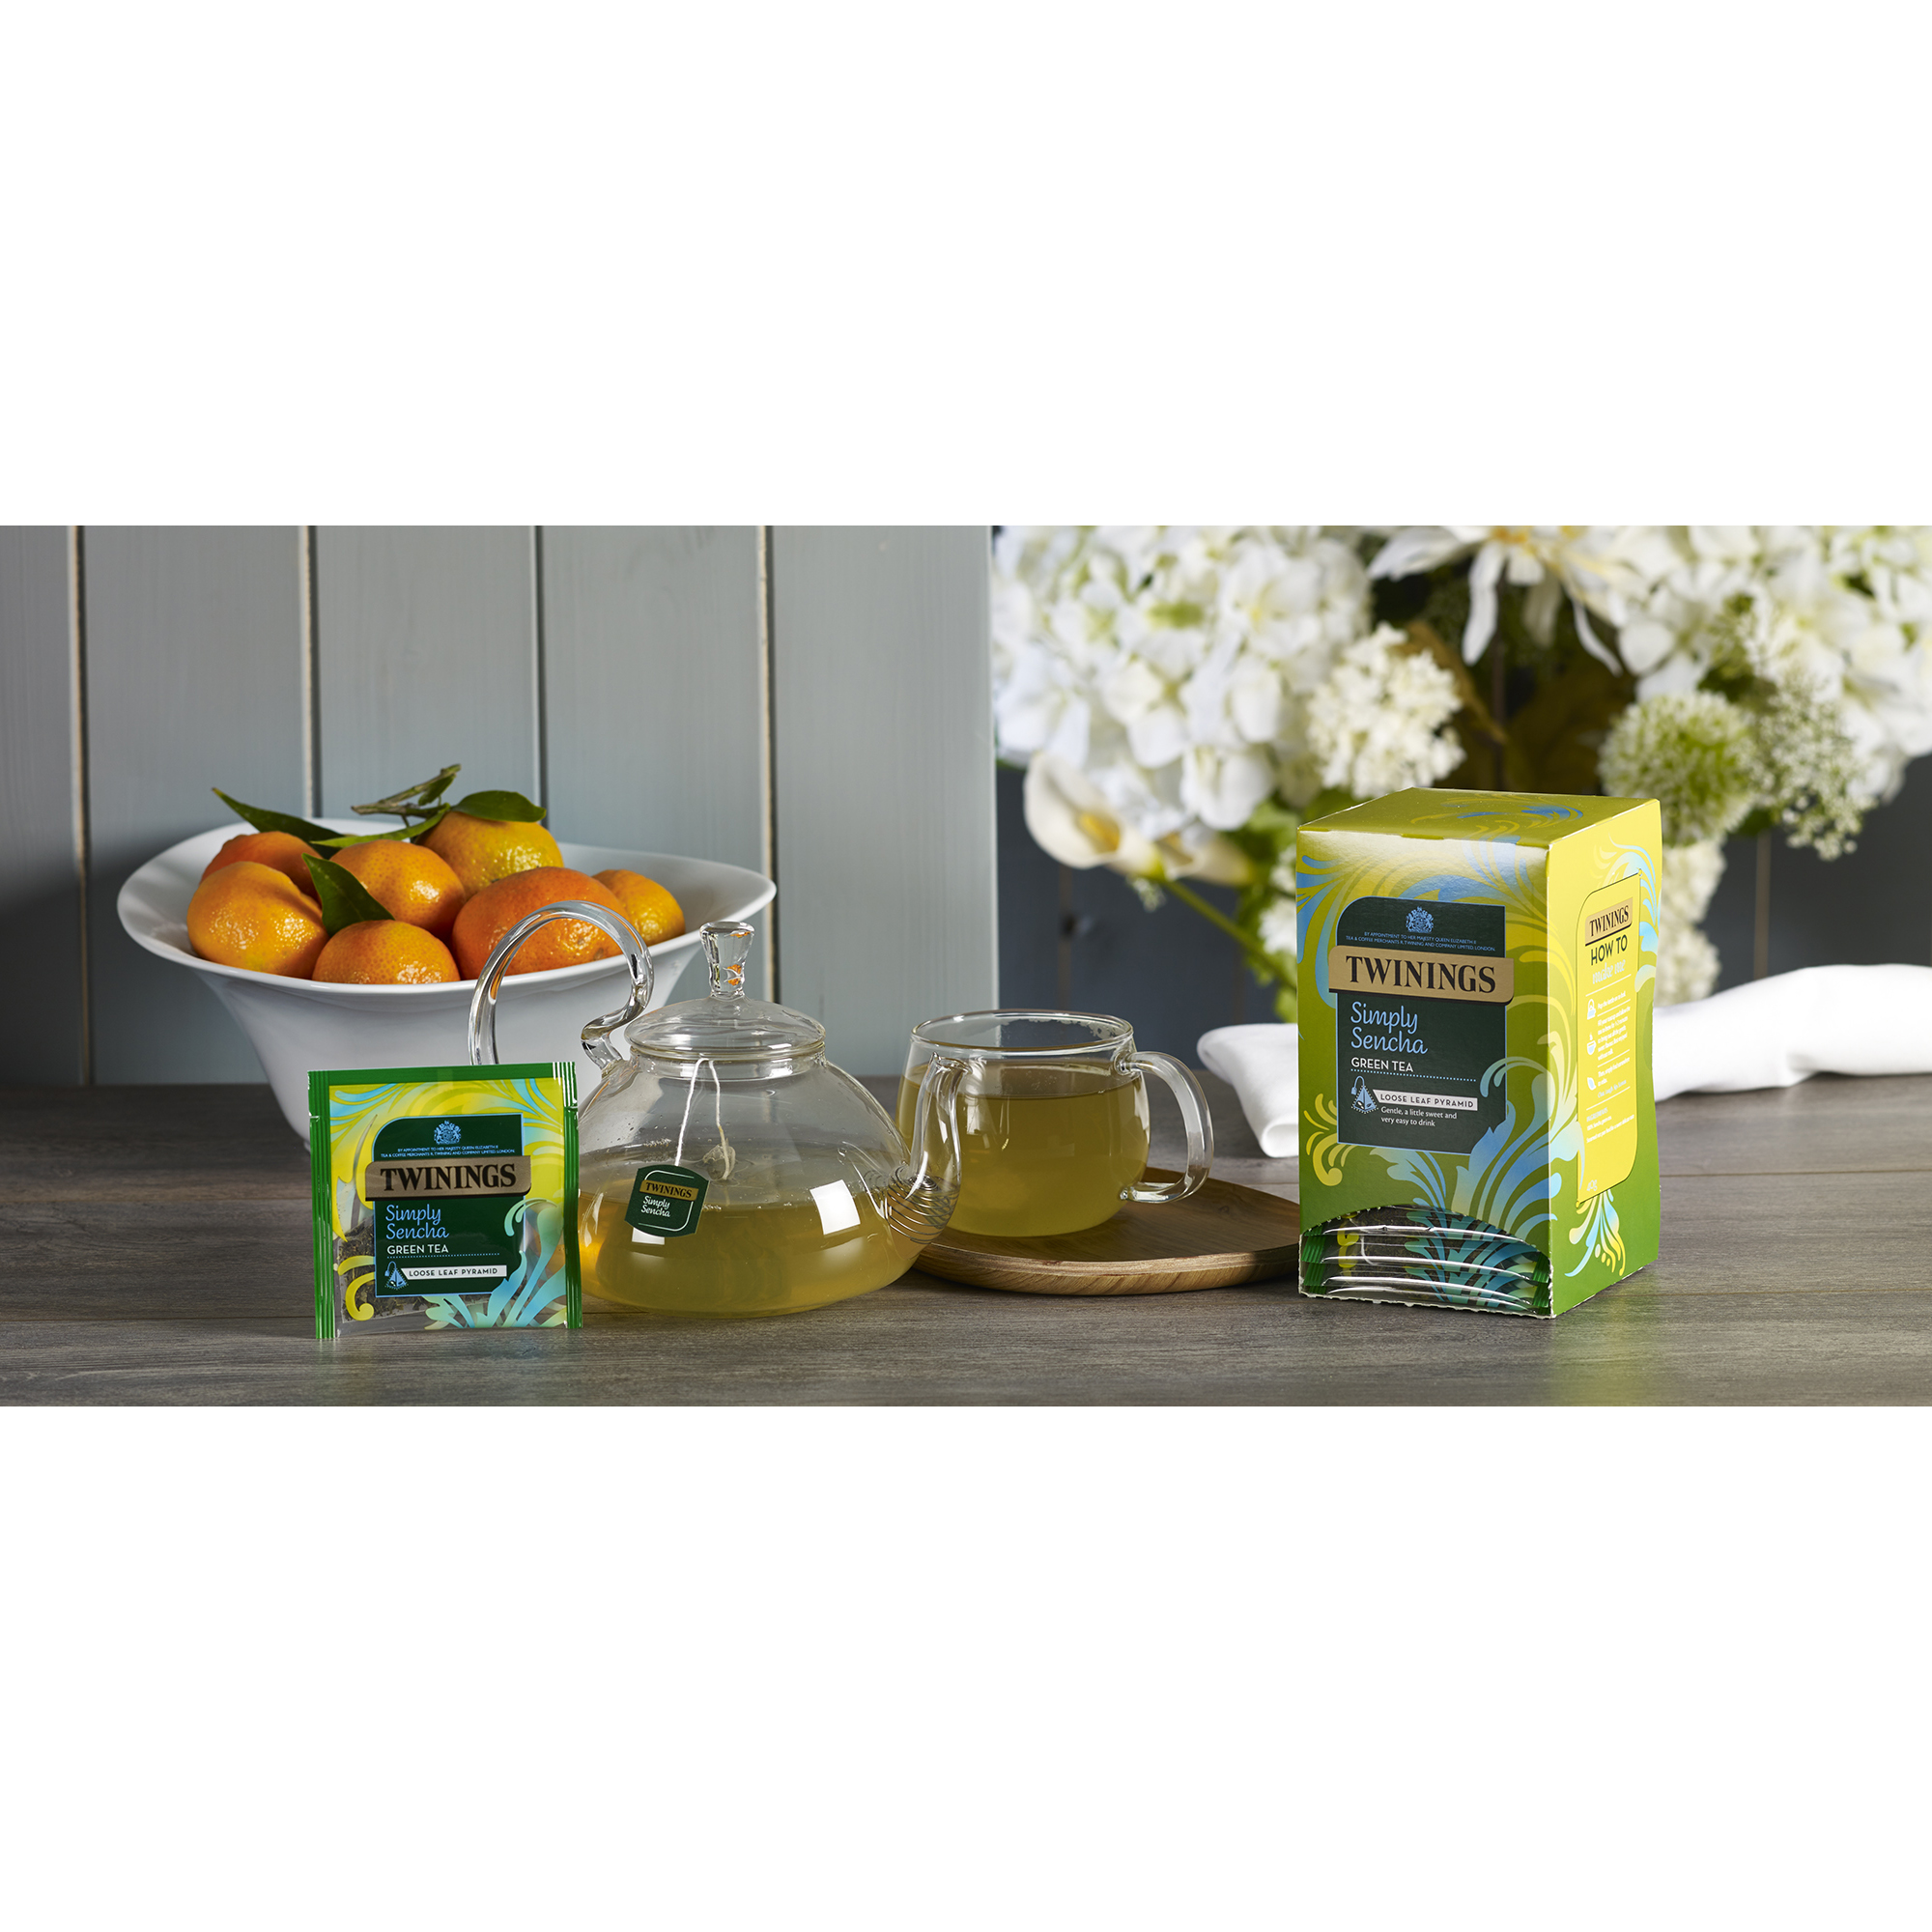 Twinings Tea Bags Individually-wrapped Simply Sencha Ref 0403365 [Pack 20]